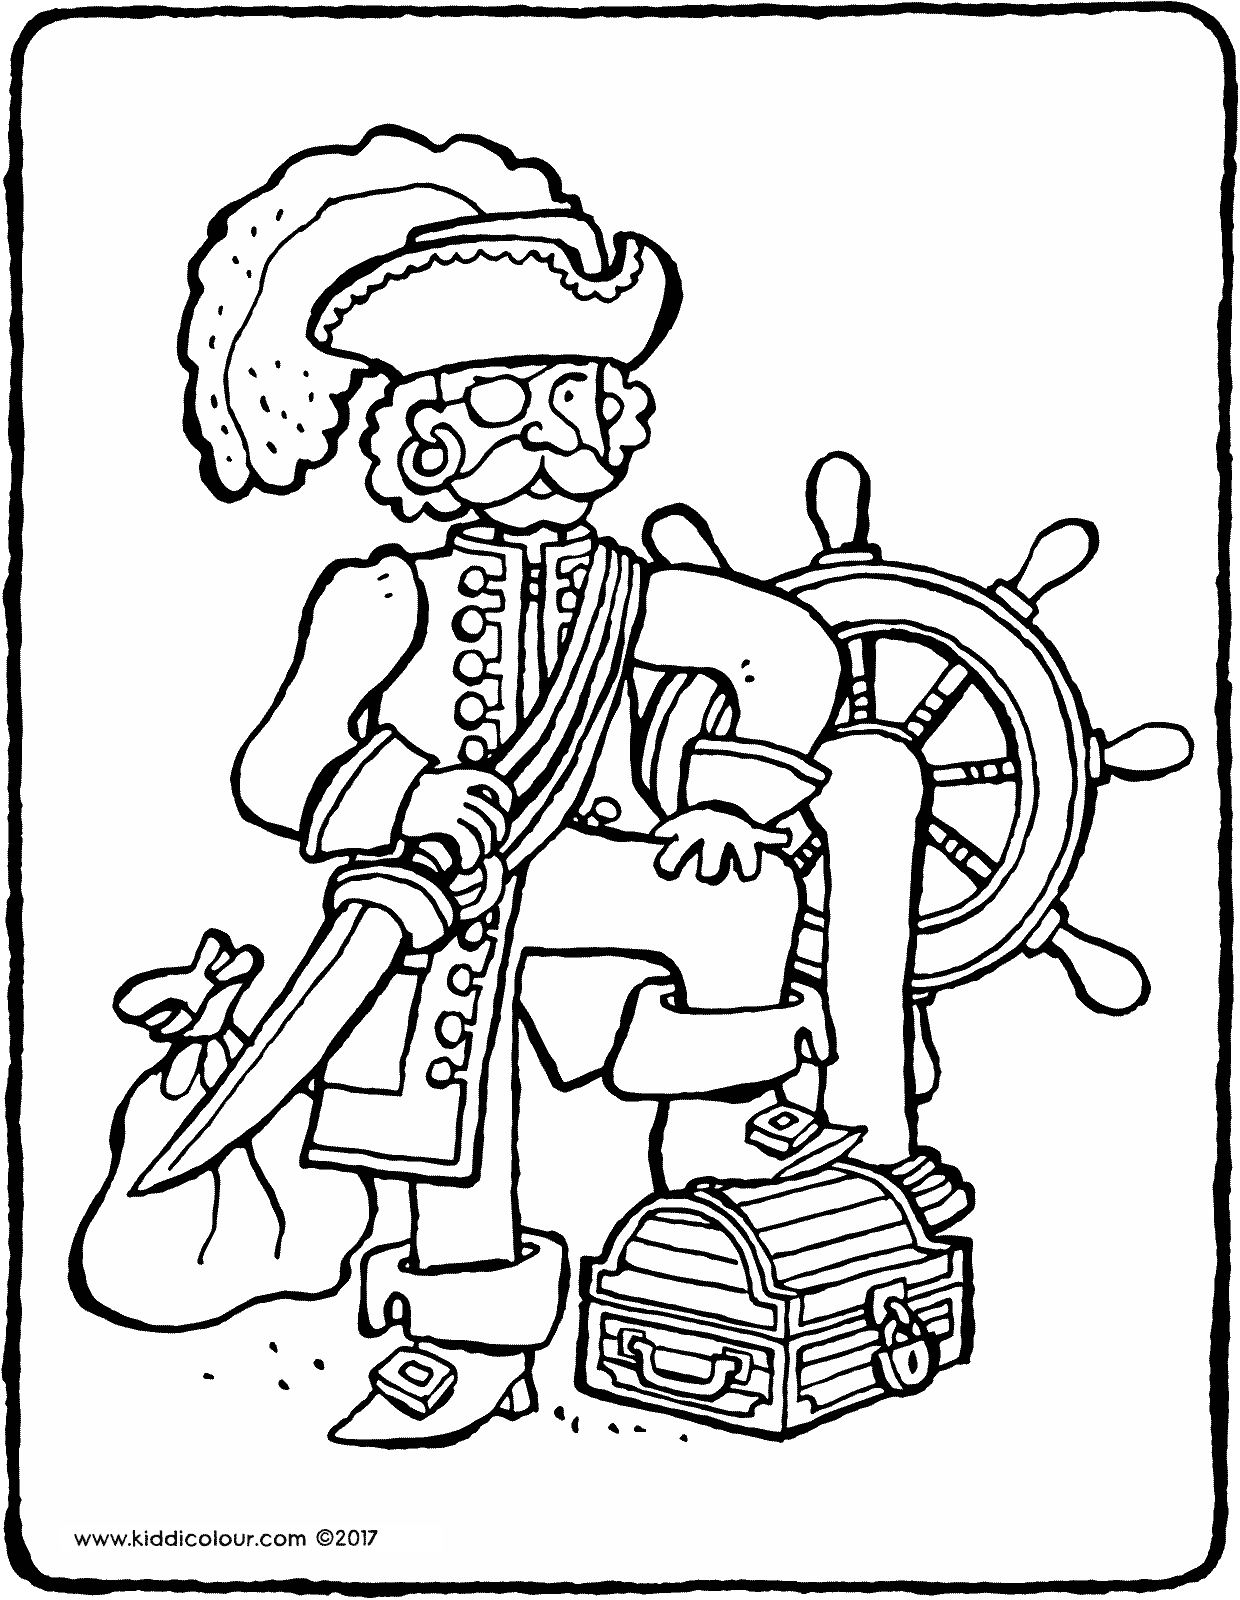 pirate captain colouring page drawing picture 01V